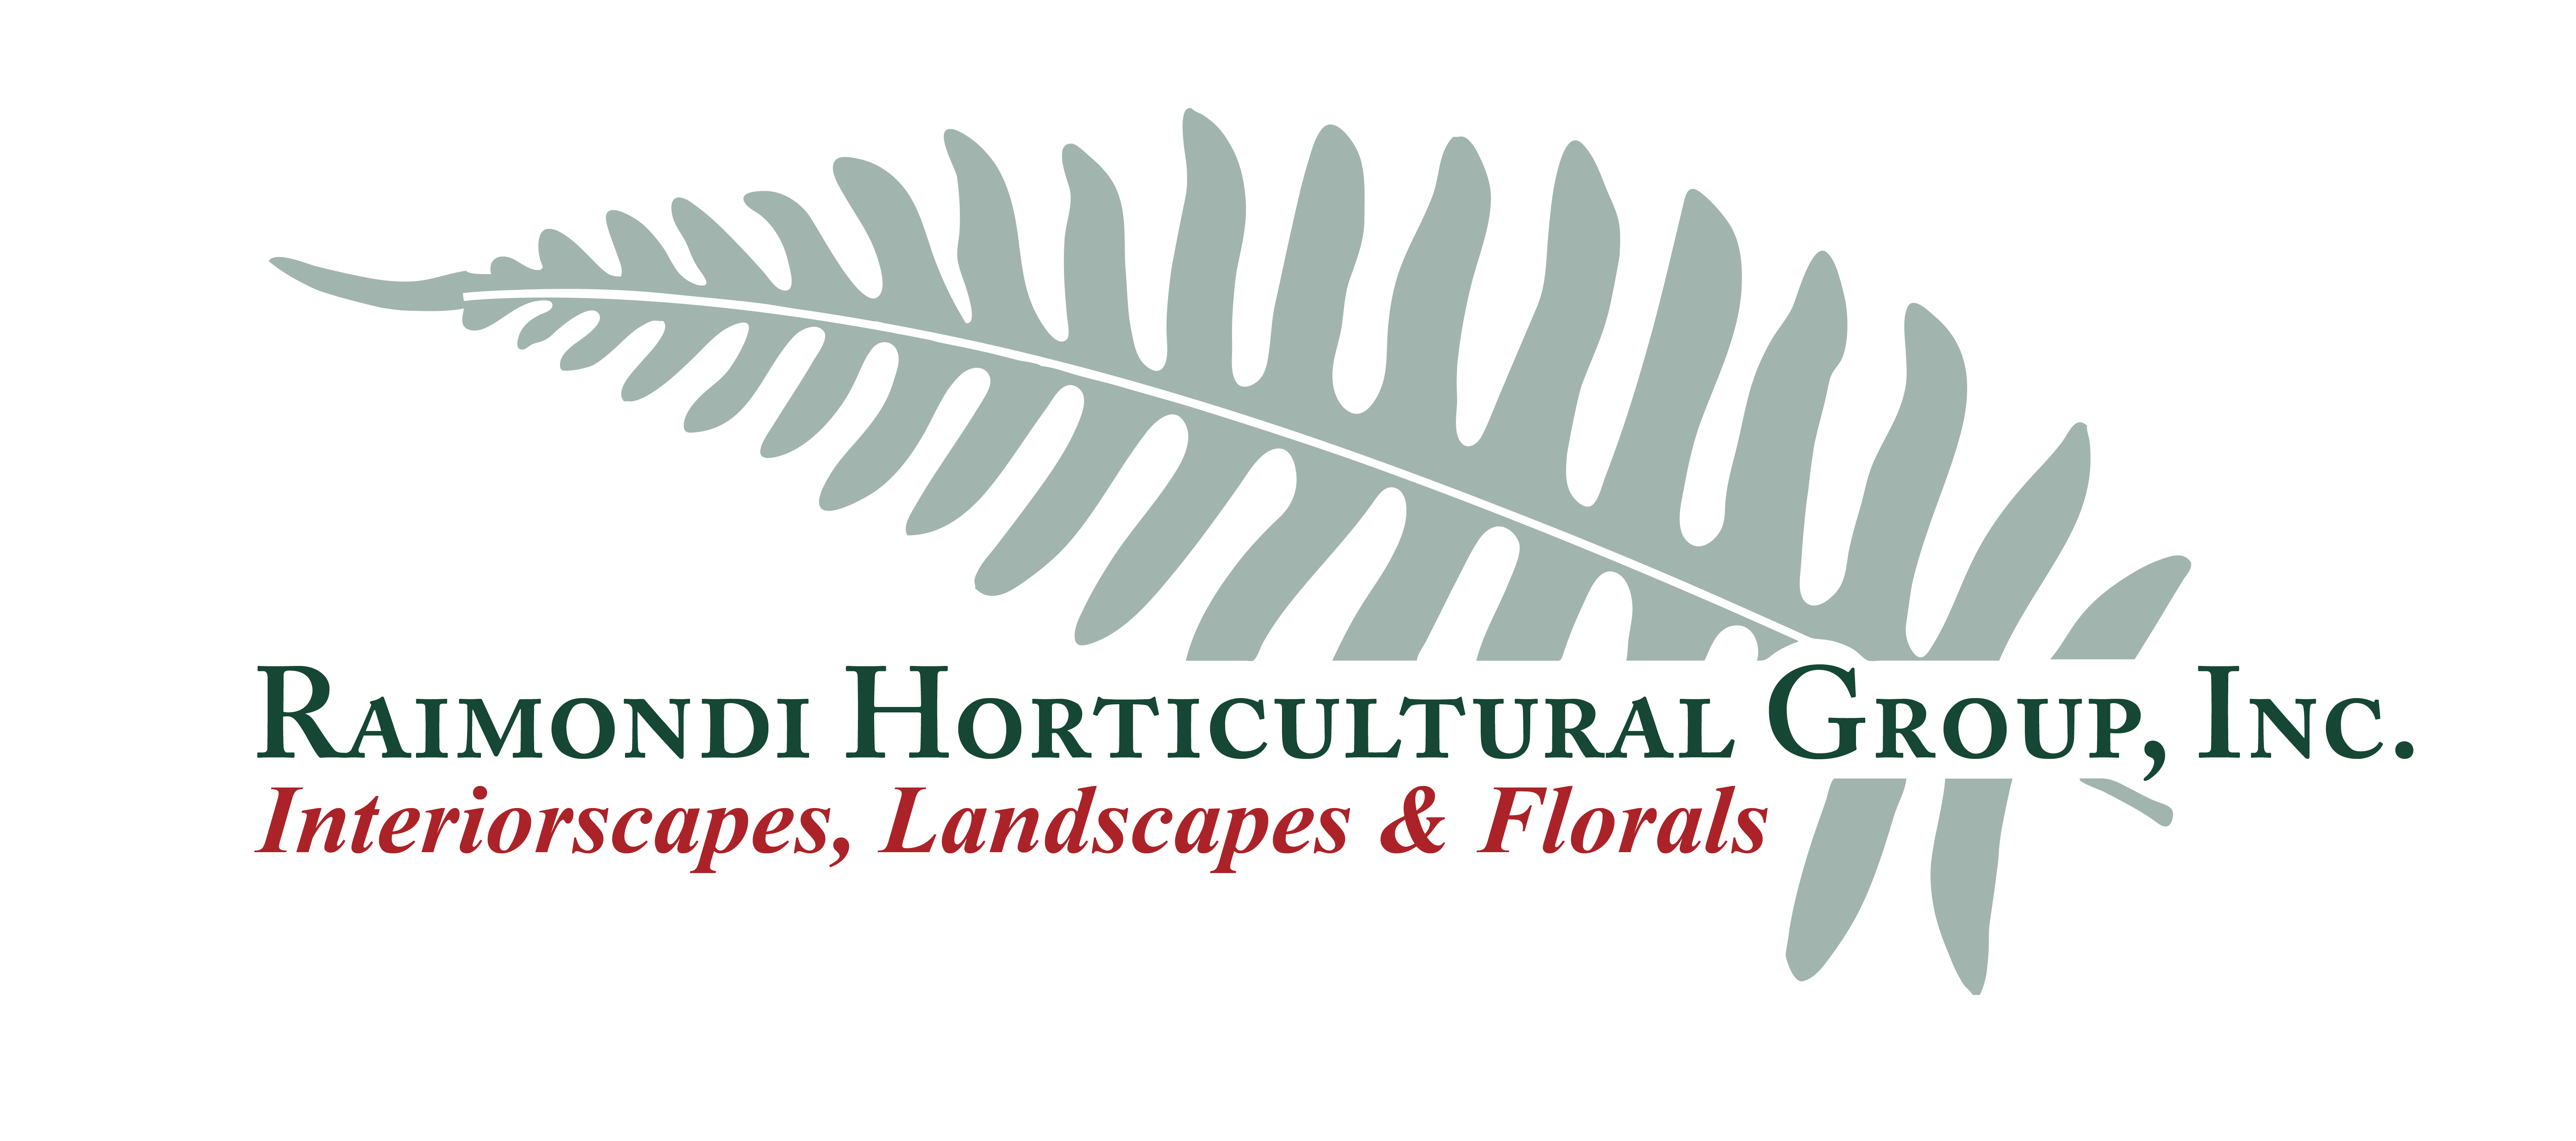 Raimondi Horticultural Group, Inc